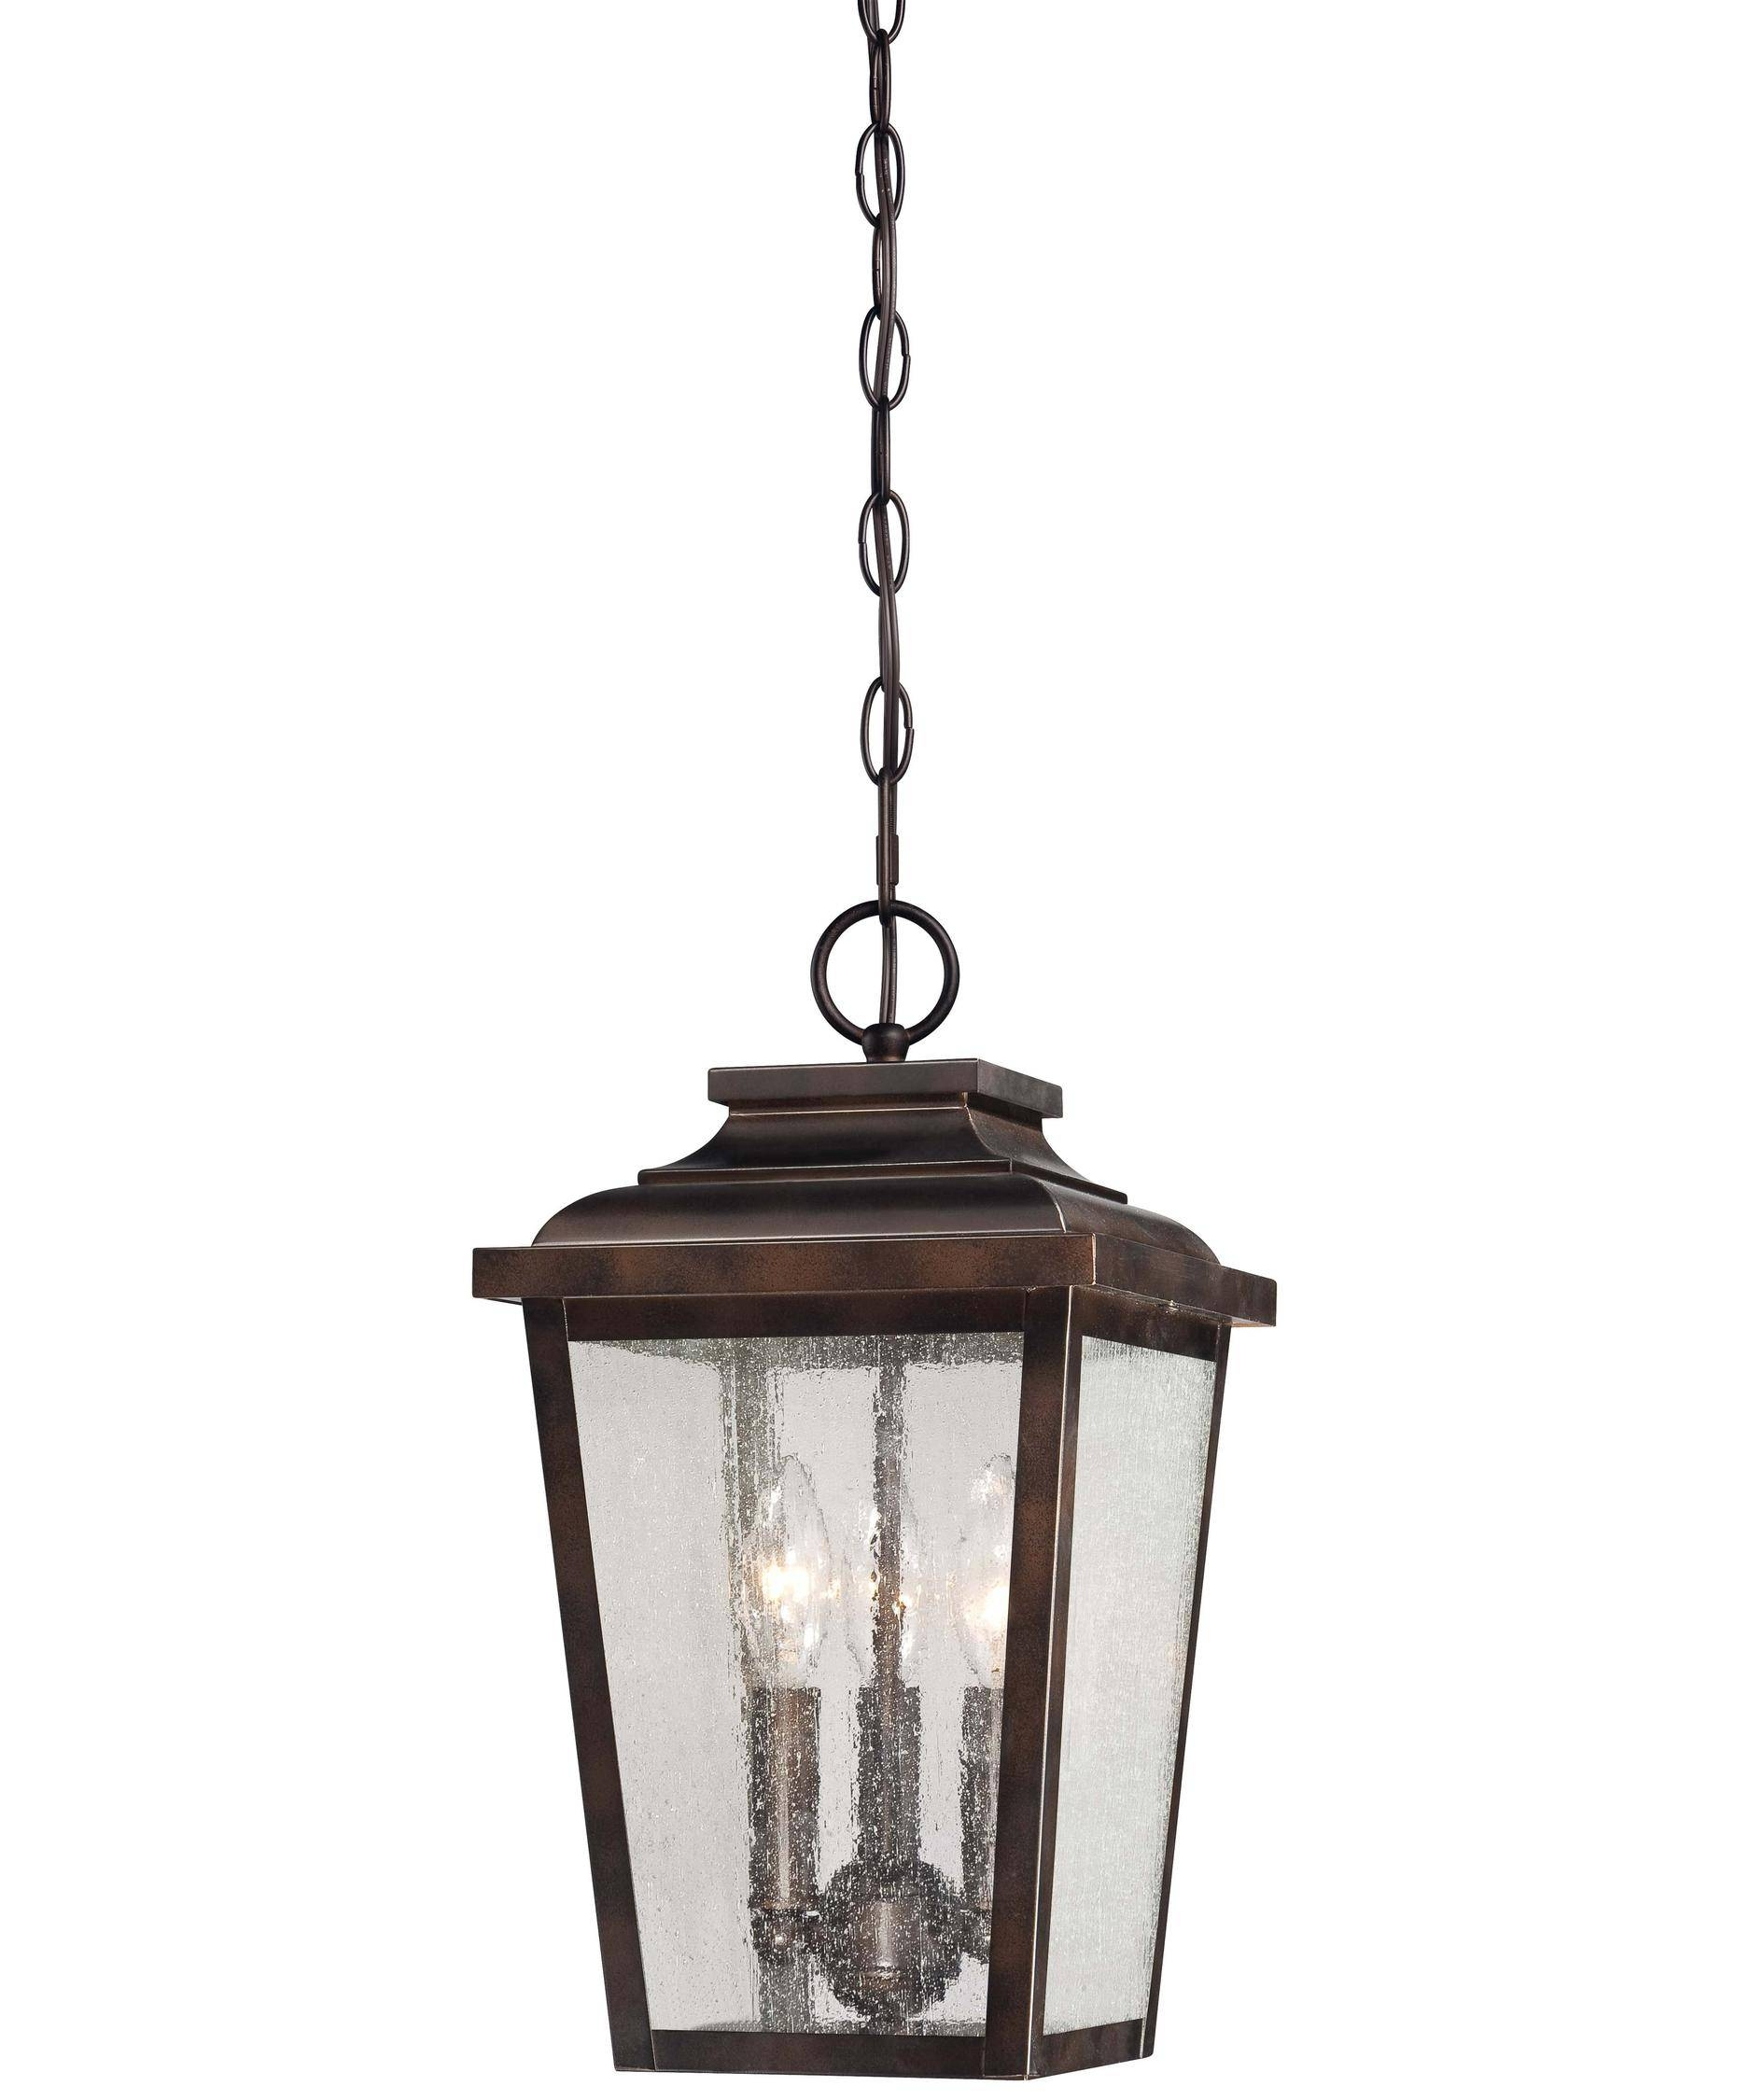 Pendant Lighting Ideas: Creative Designing Outdoor Pendant in Outside Pendant Lights (Image 10 of 15)